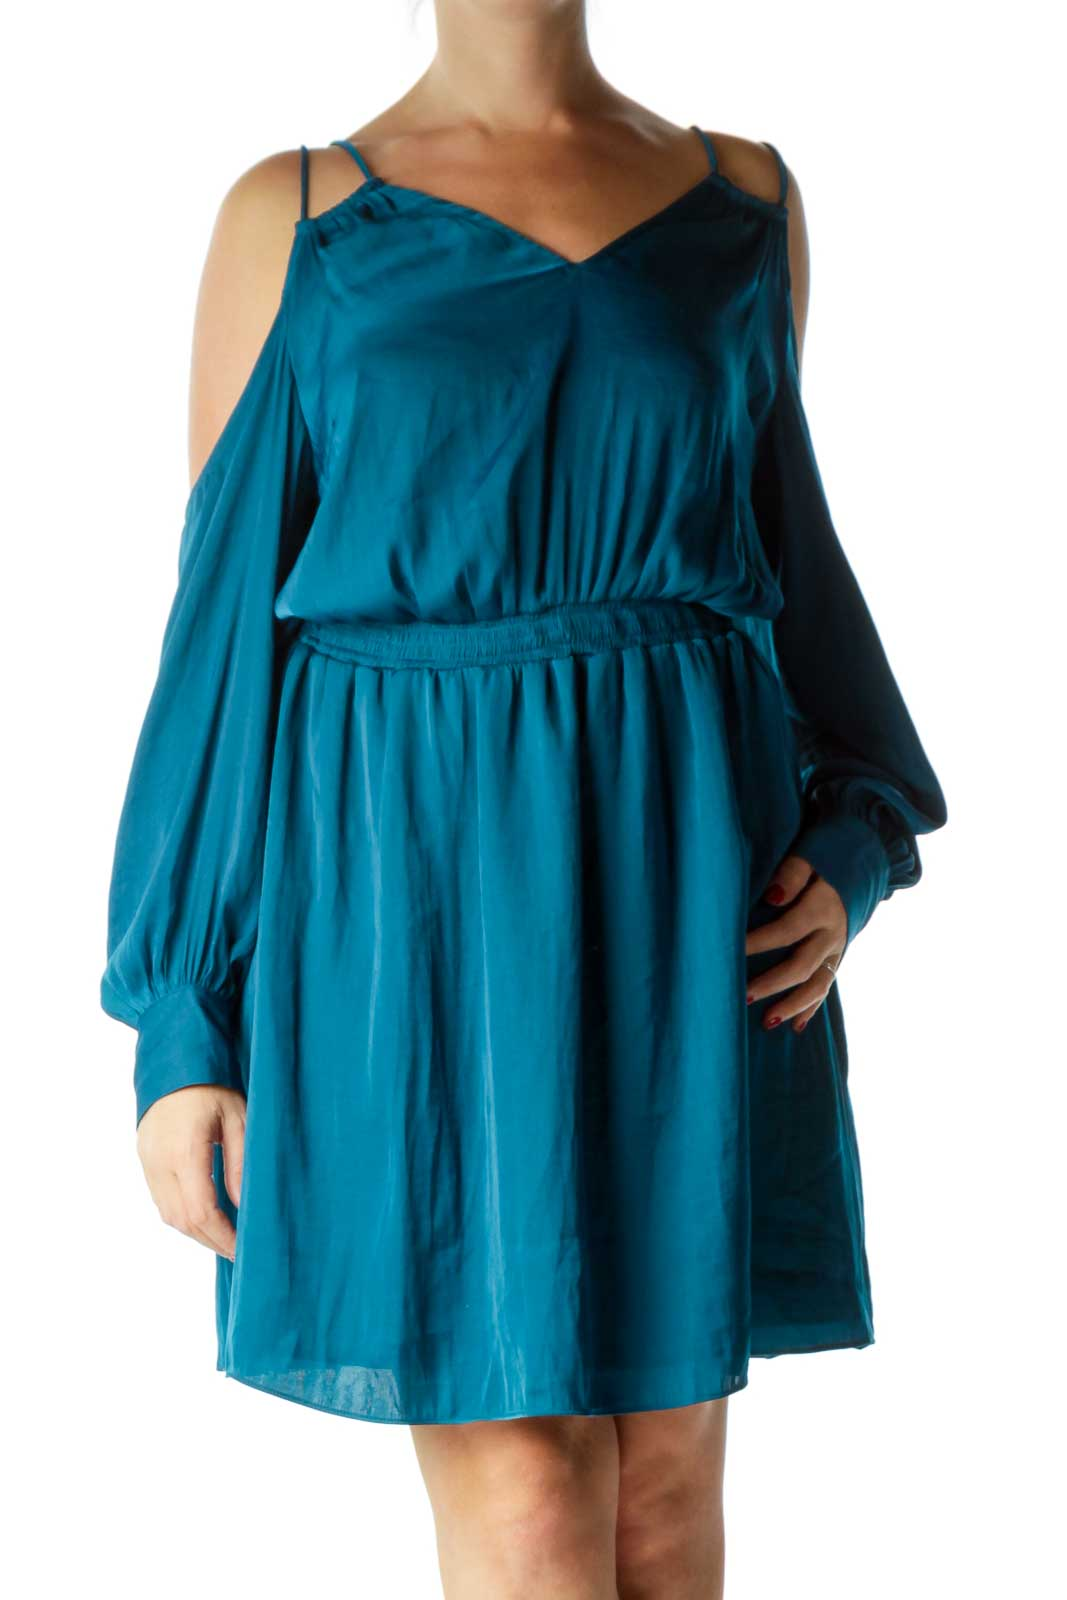 Turquoise Cold Shoulder Cocktail Dress